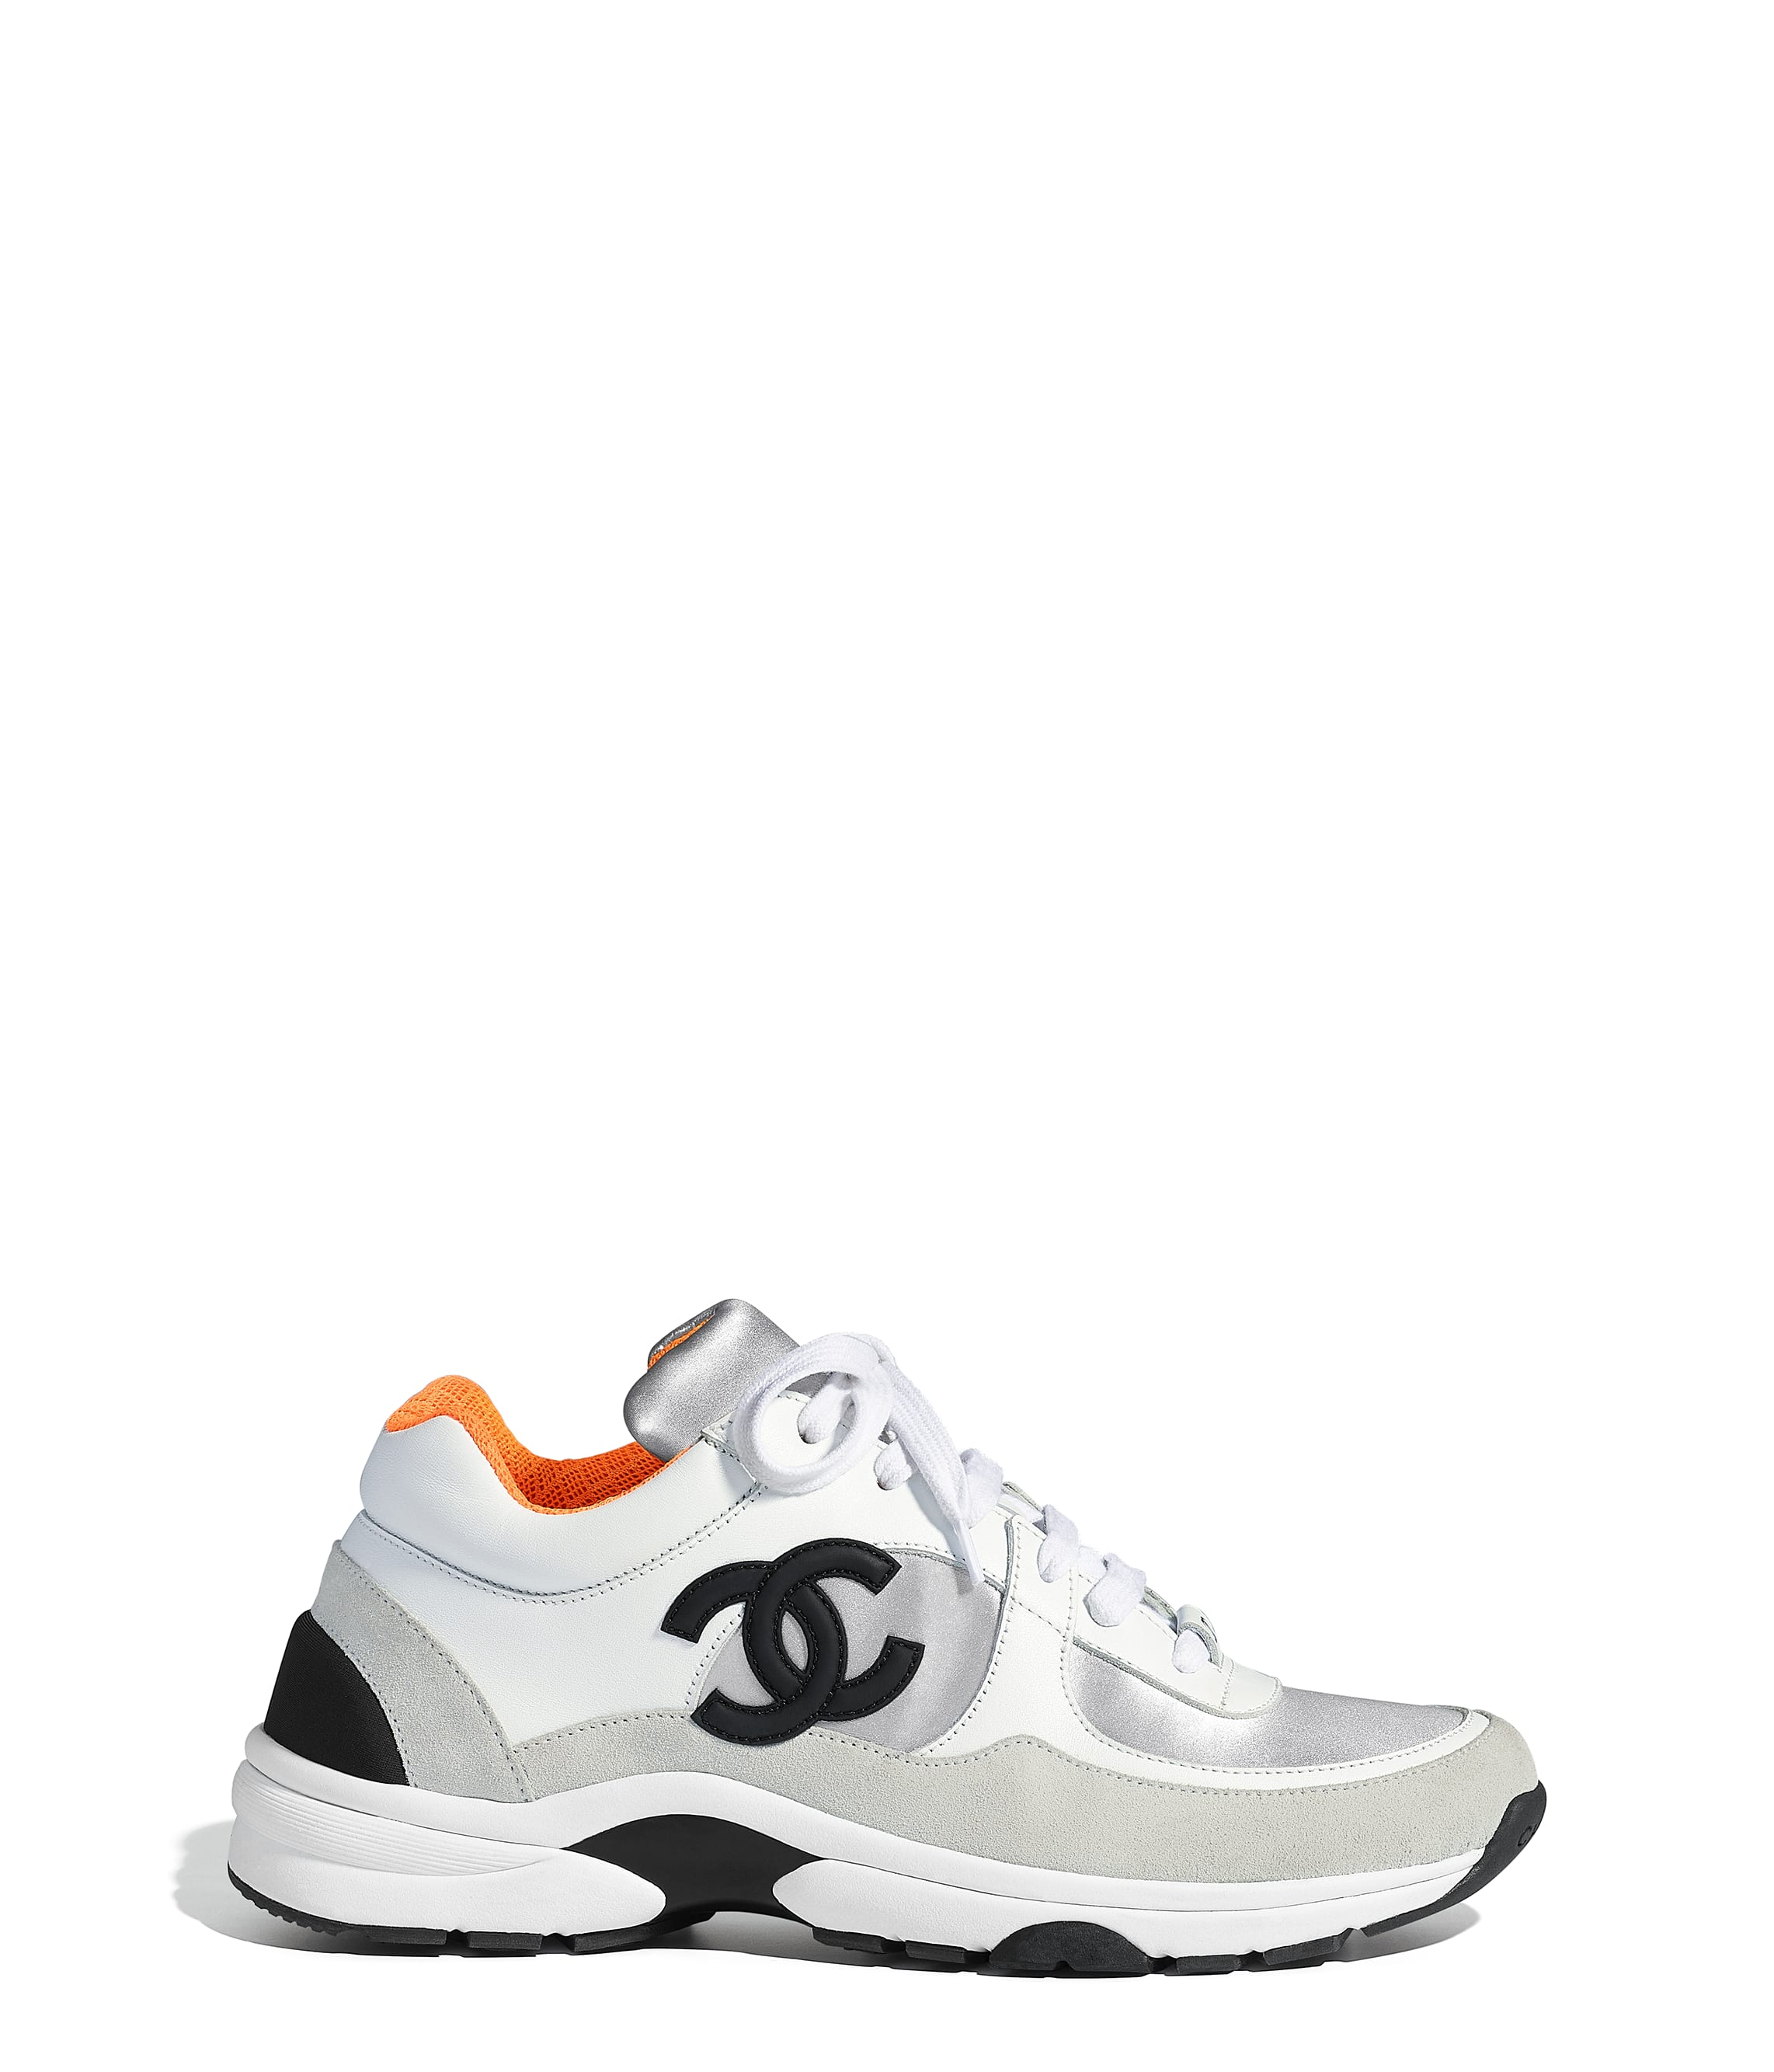 Chanel Sneakers Shoes Price